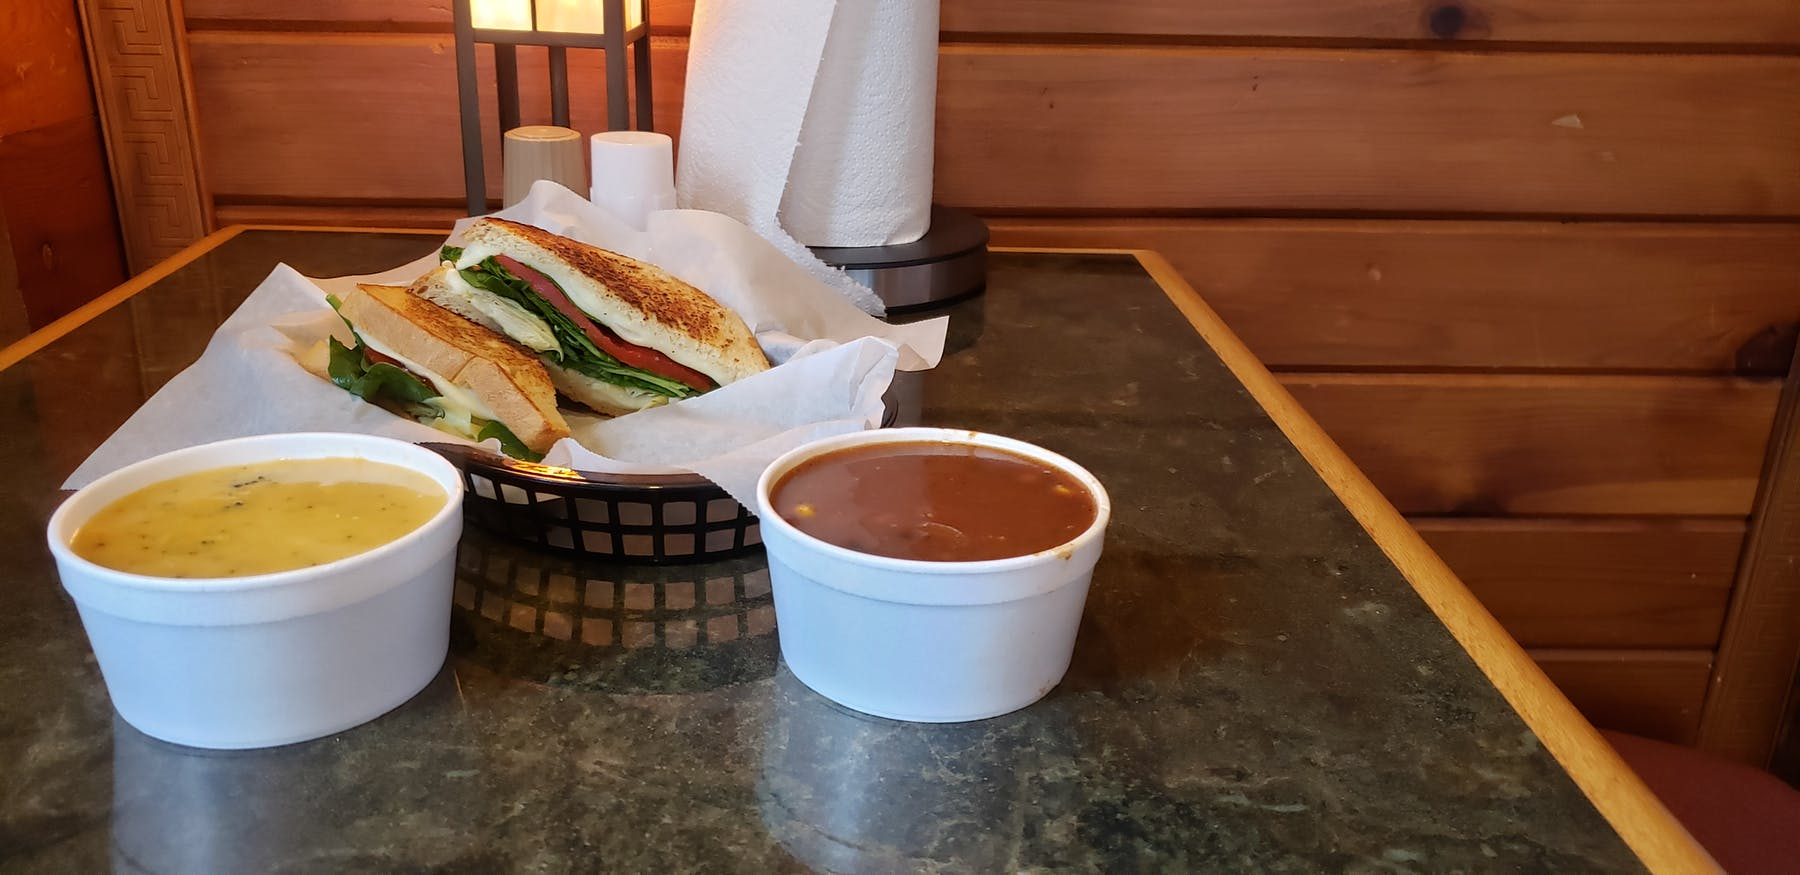 Roasted Red Pepper Grilled Cheese, Broccoli Cheese Soup, Beef & Corn Chili